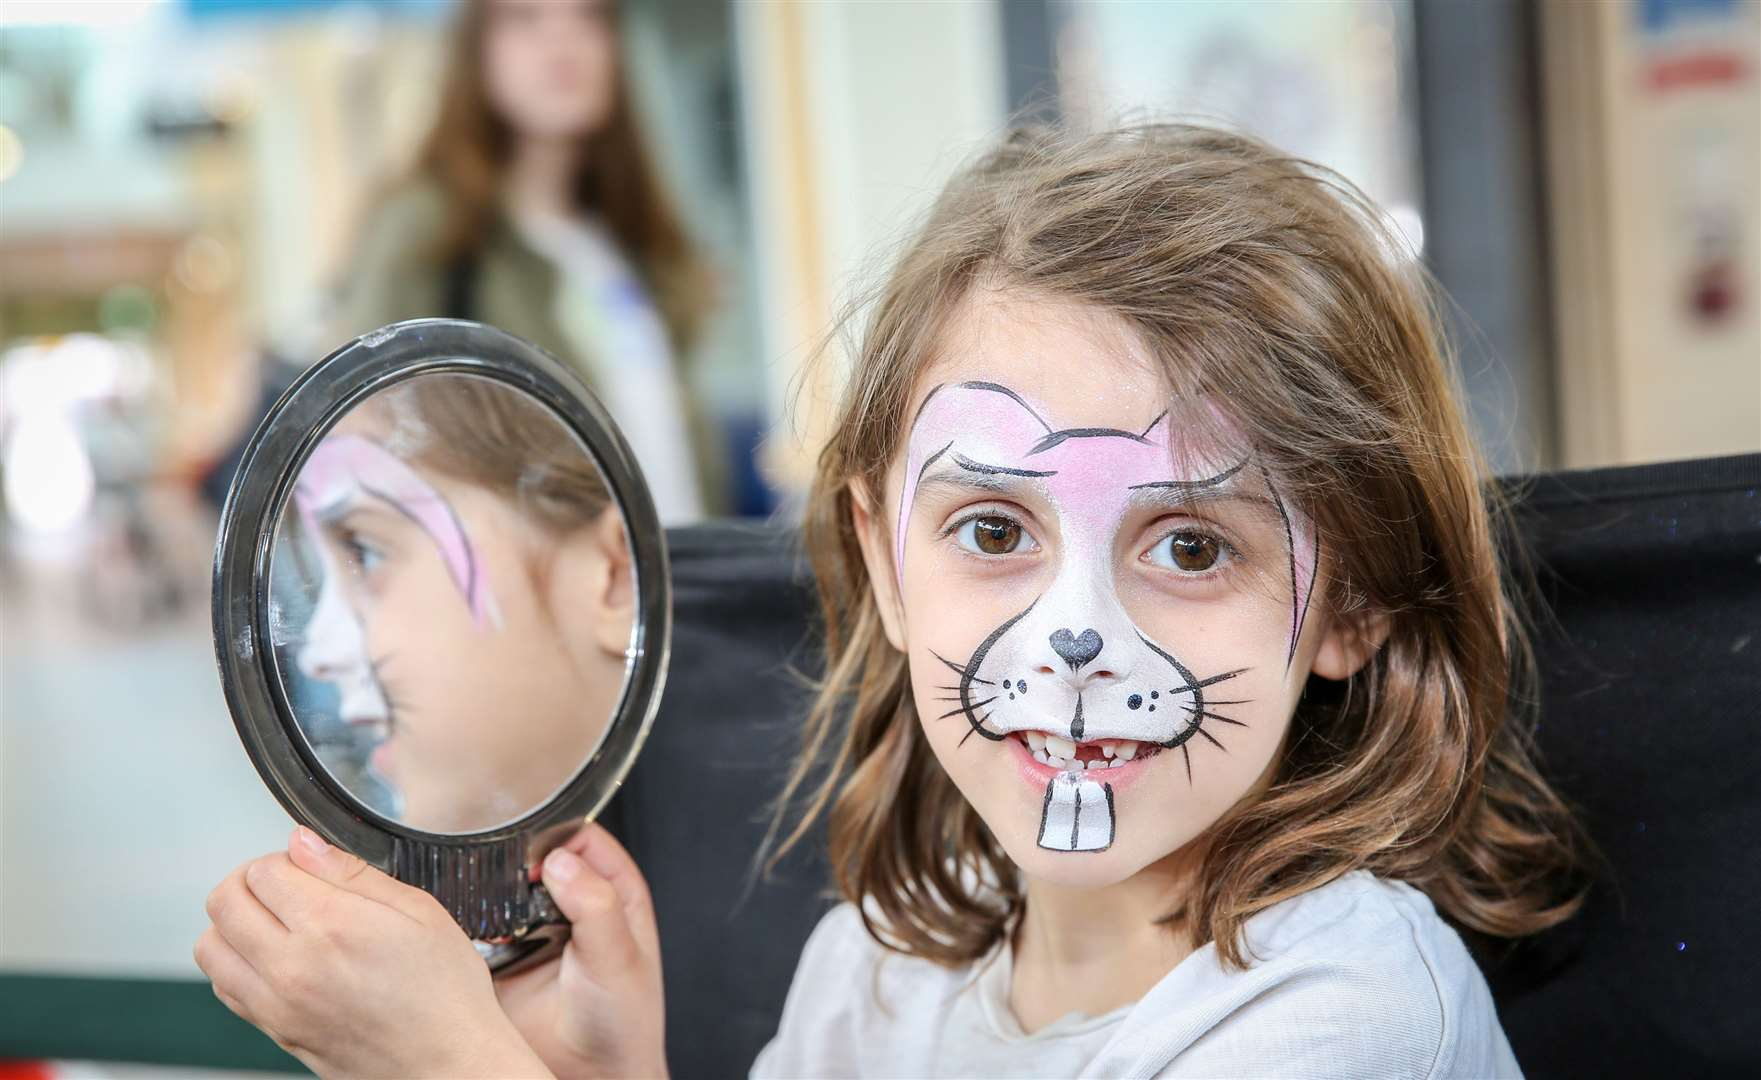 Hempstead Valley Shopping Centre has Easter fun, including face painting as Alice Johnson found out Picture: Matthew Walker